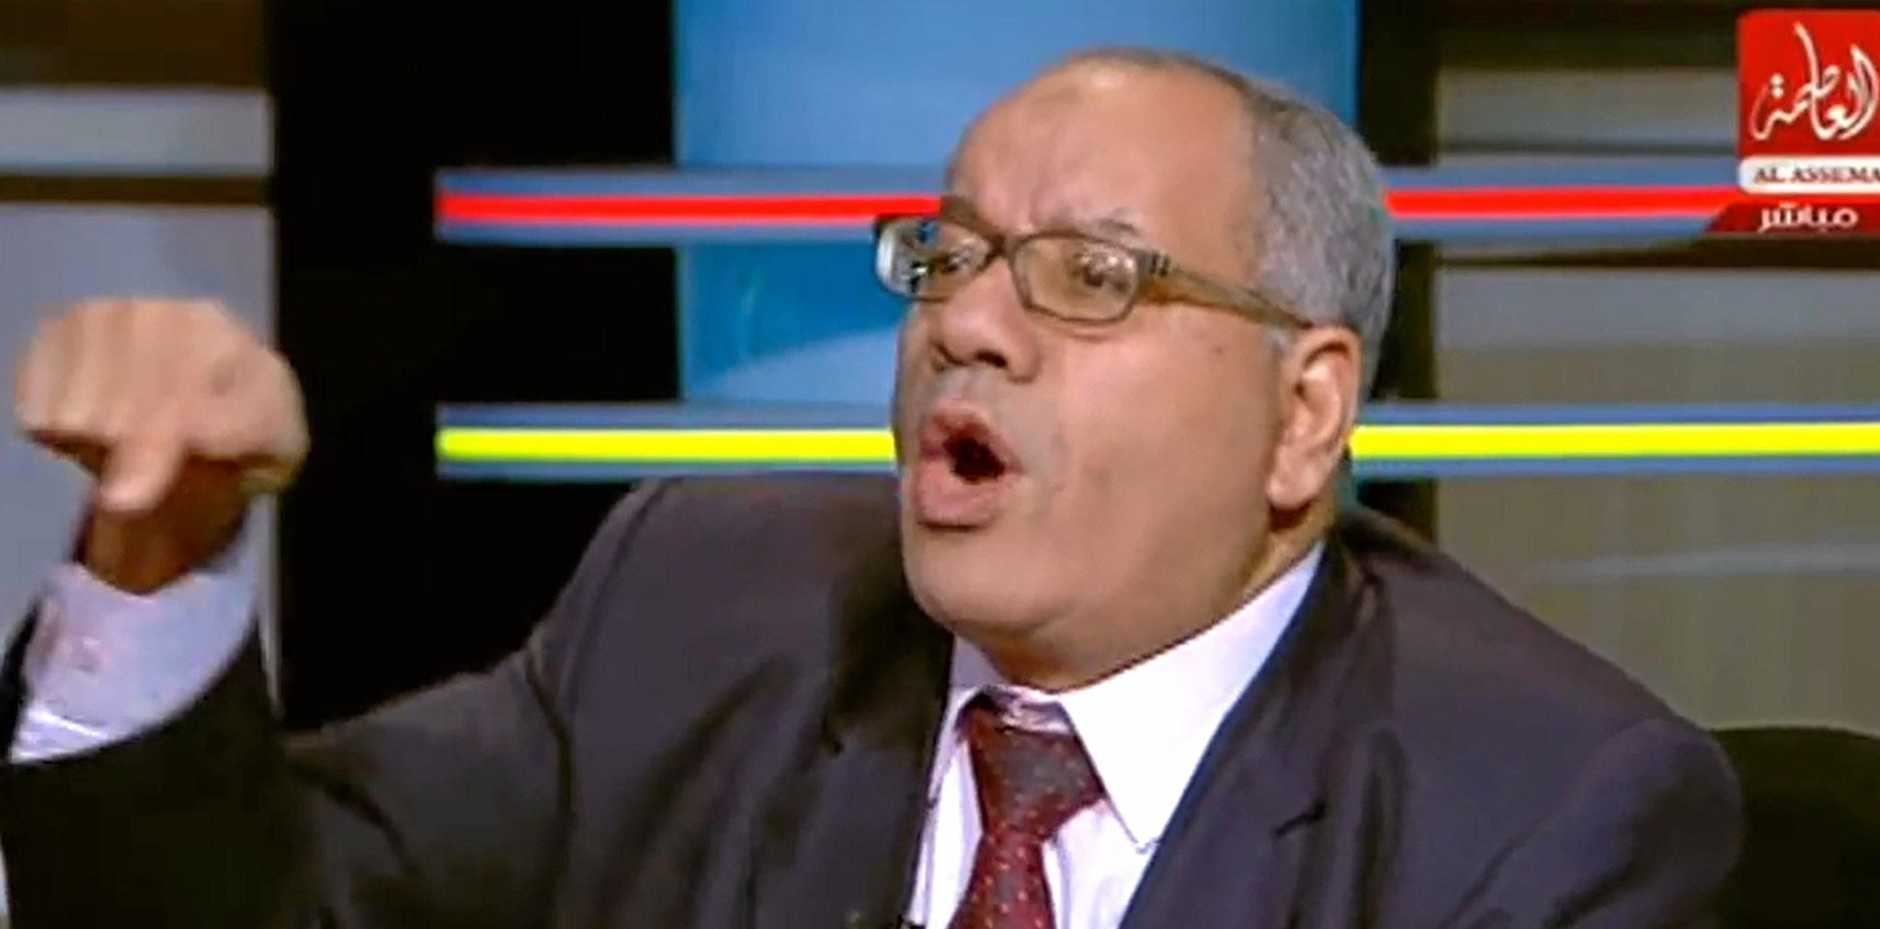 Egyptian lawyer Nabih al-Wahsh has three years in jail to reconsider his outrageous remarks on a talkshow.